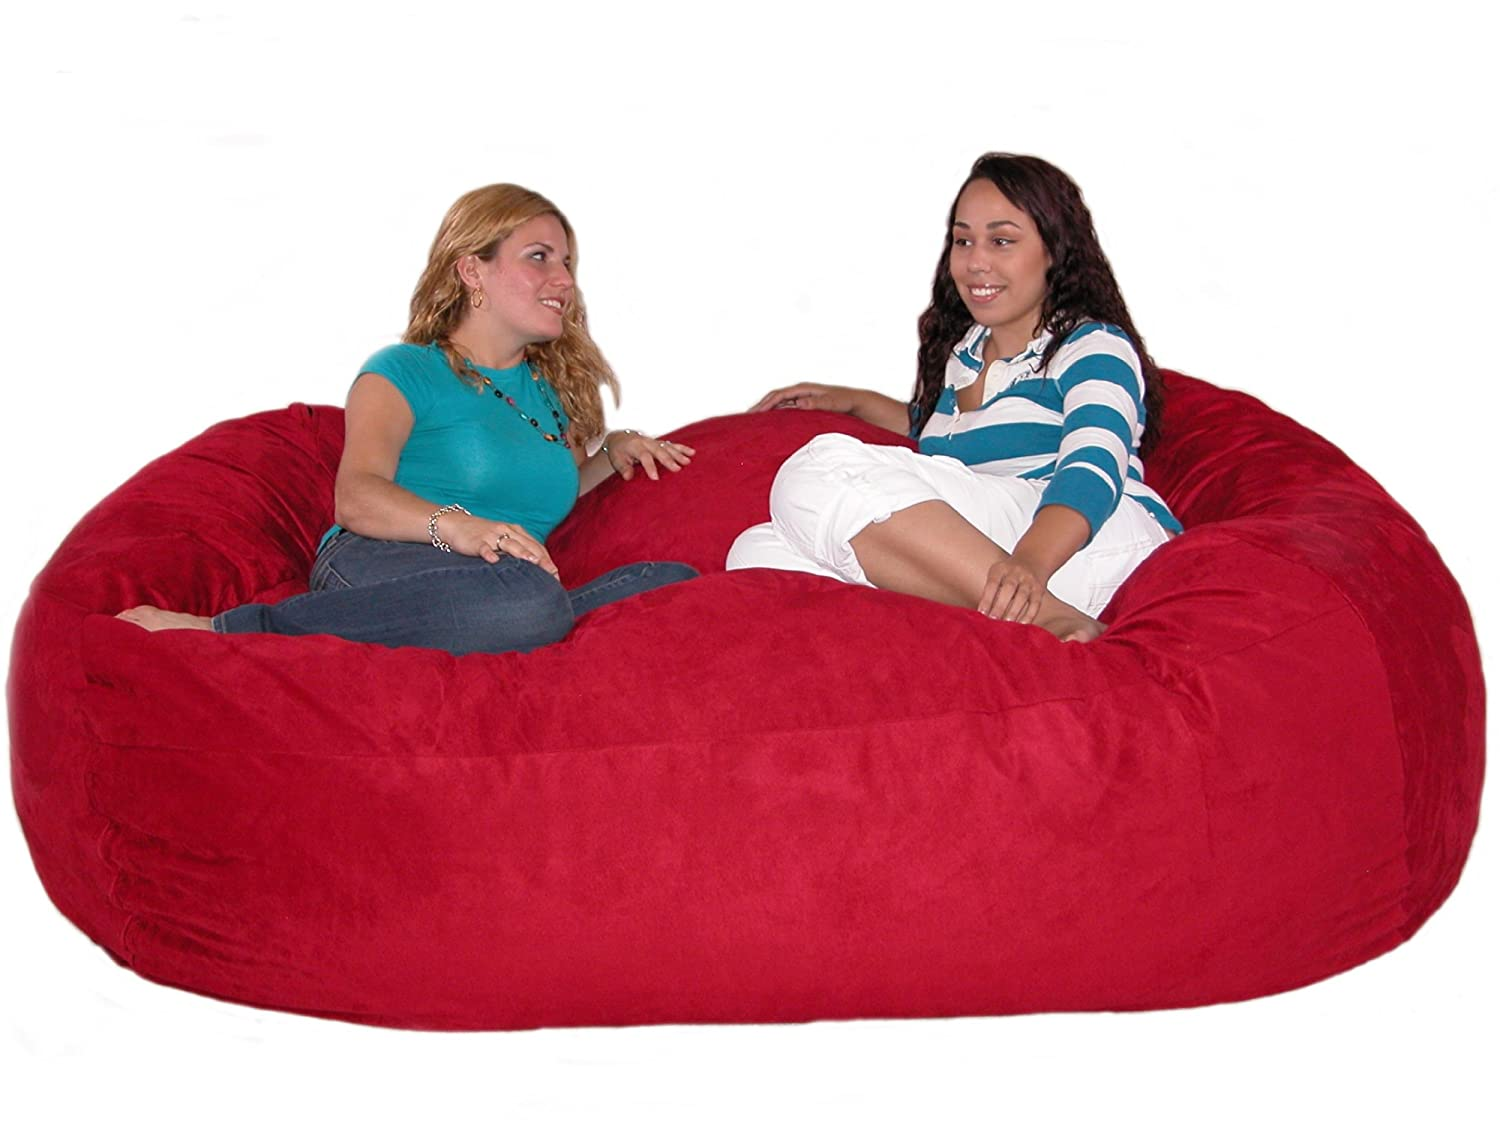 Ababbe660f73f944 in addition 7 Feet Xx Large Cinnabar Cozy Sac Foof likewise 7 Classy Adult Bean Bags furthermore Bean Bag Cover Pattern Free furthermore A House At Caesarea Architects V Studio Modern Home Theater Tel Aviv. on giant bean bag chairs sale